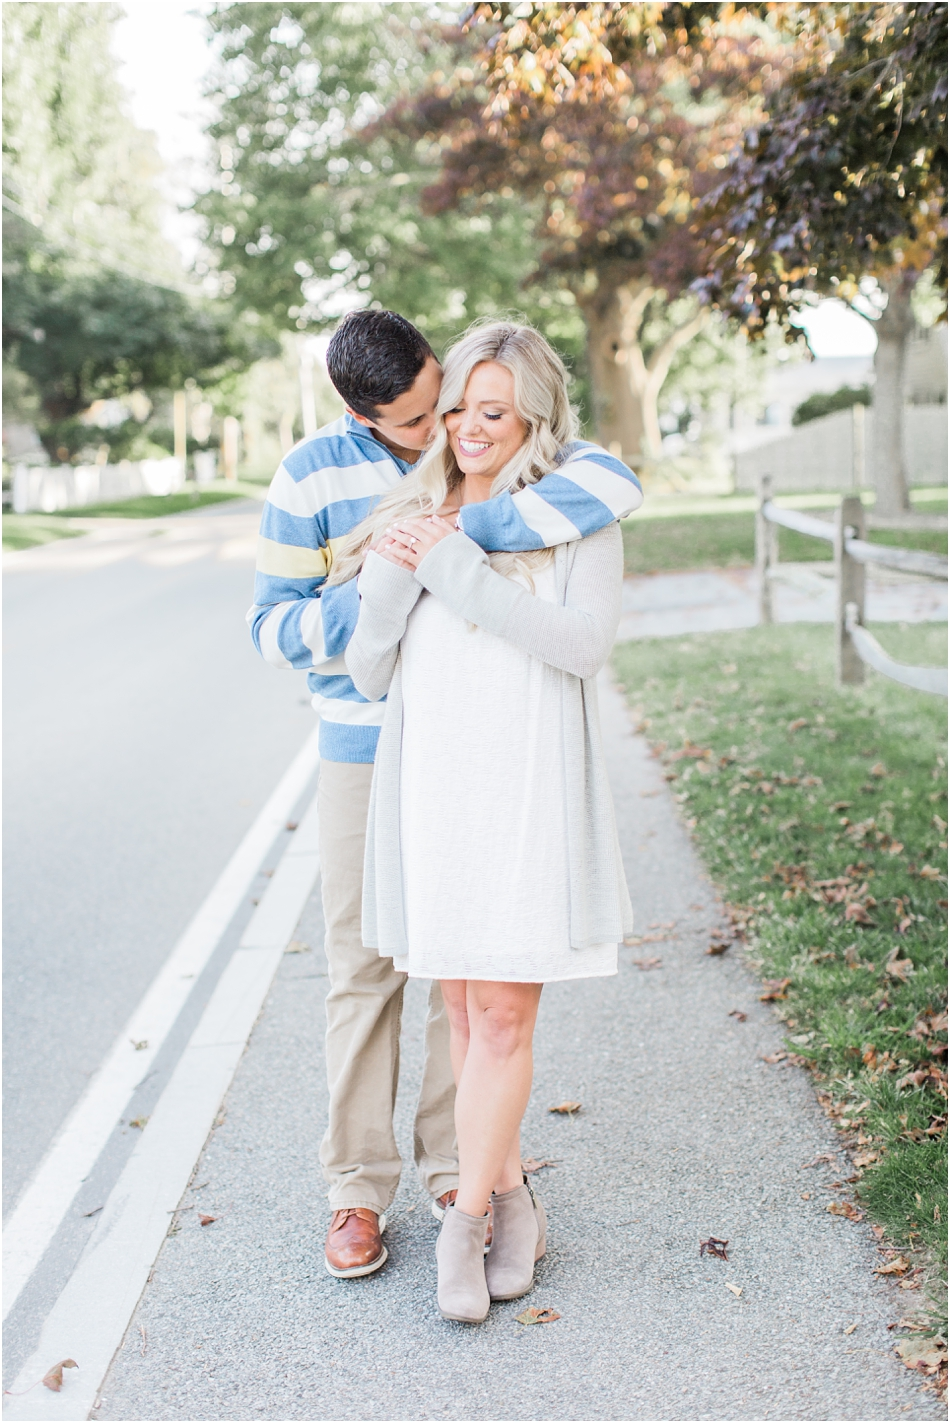 falmouth_beach_engagement_white_picket_fence_cape_cod_boston_new_england_wedding_photographer_Meredith_Jane_Photography_photo_2477.jpg